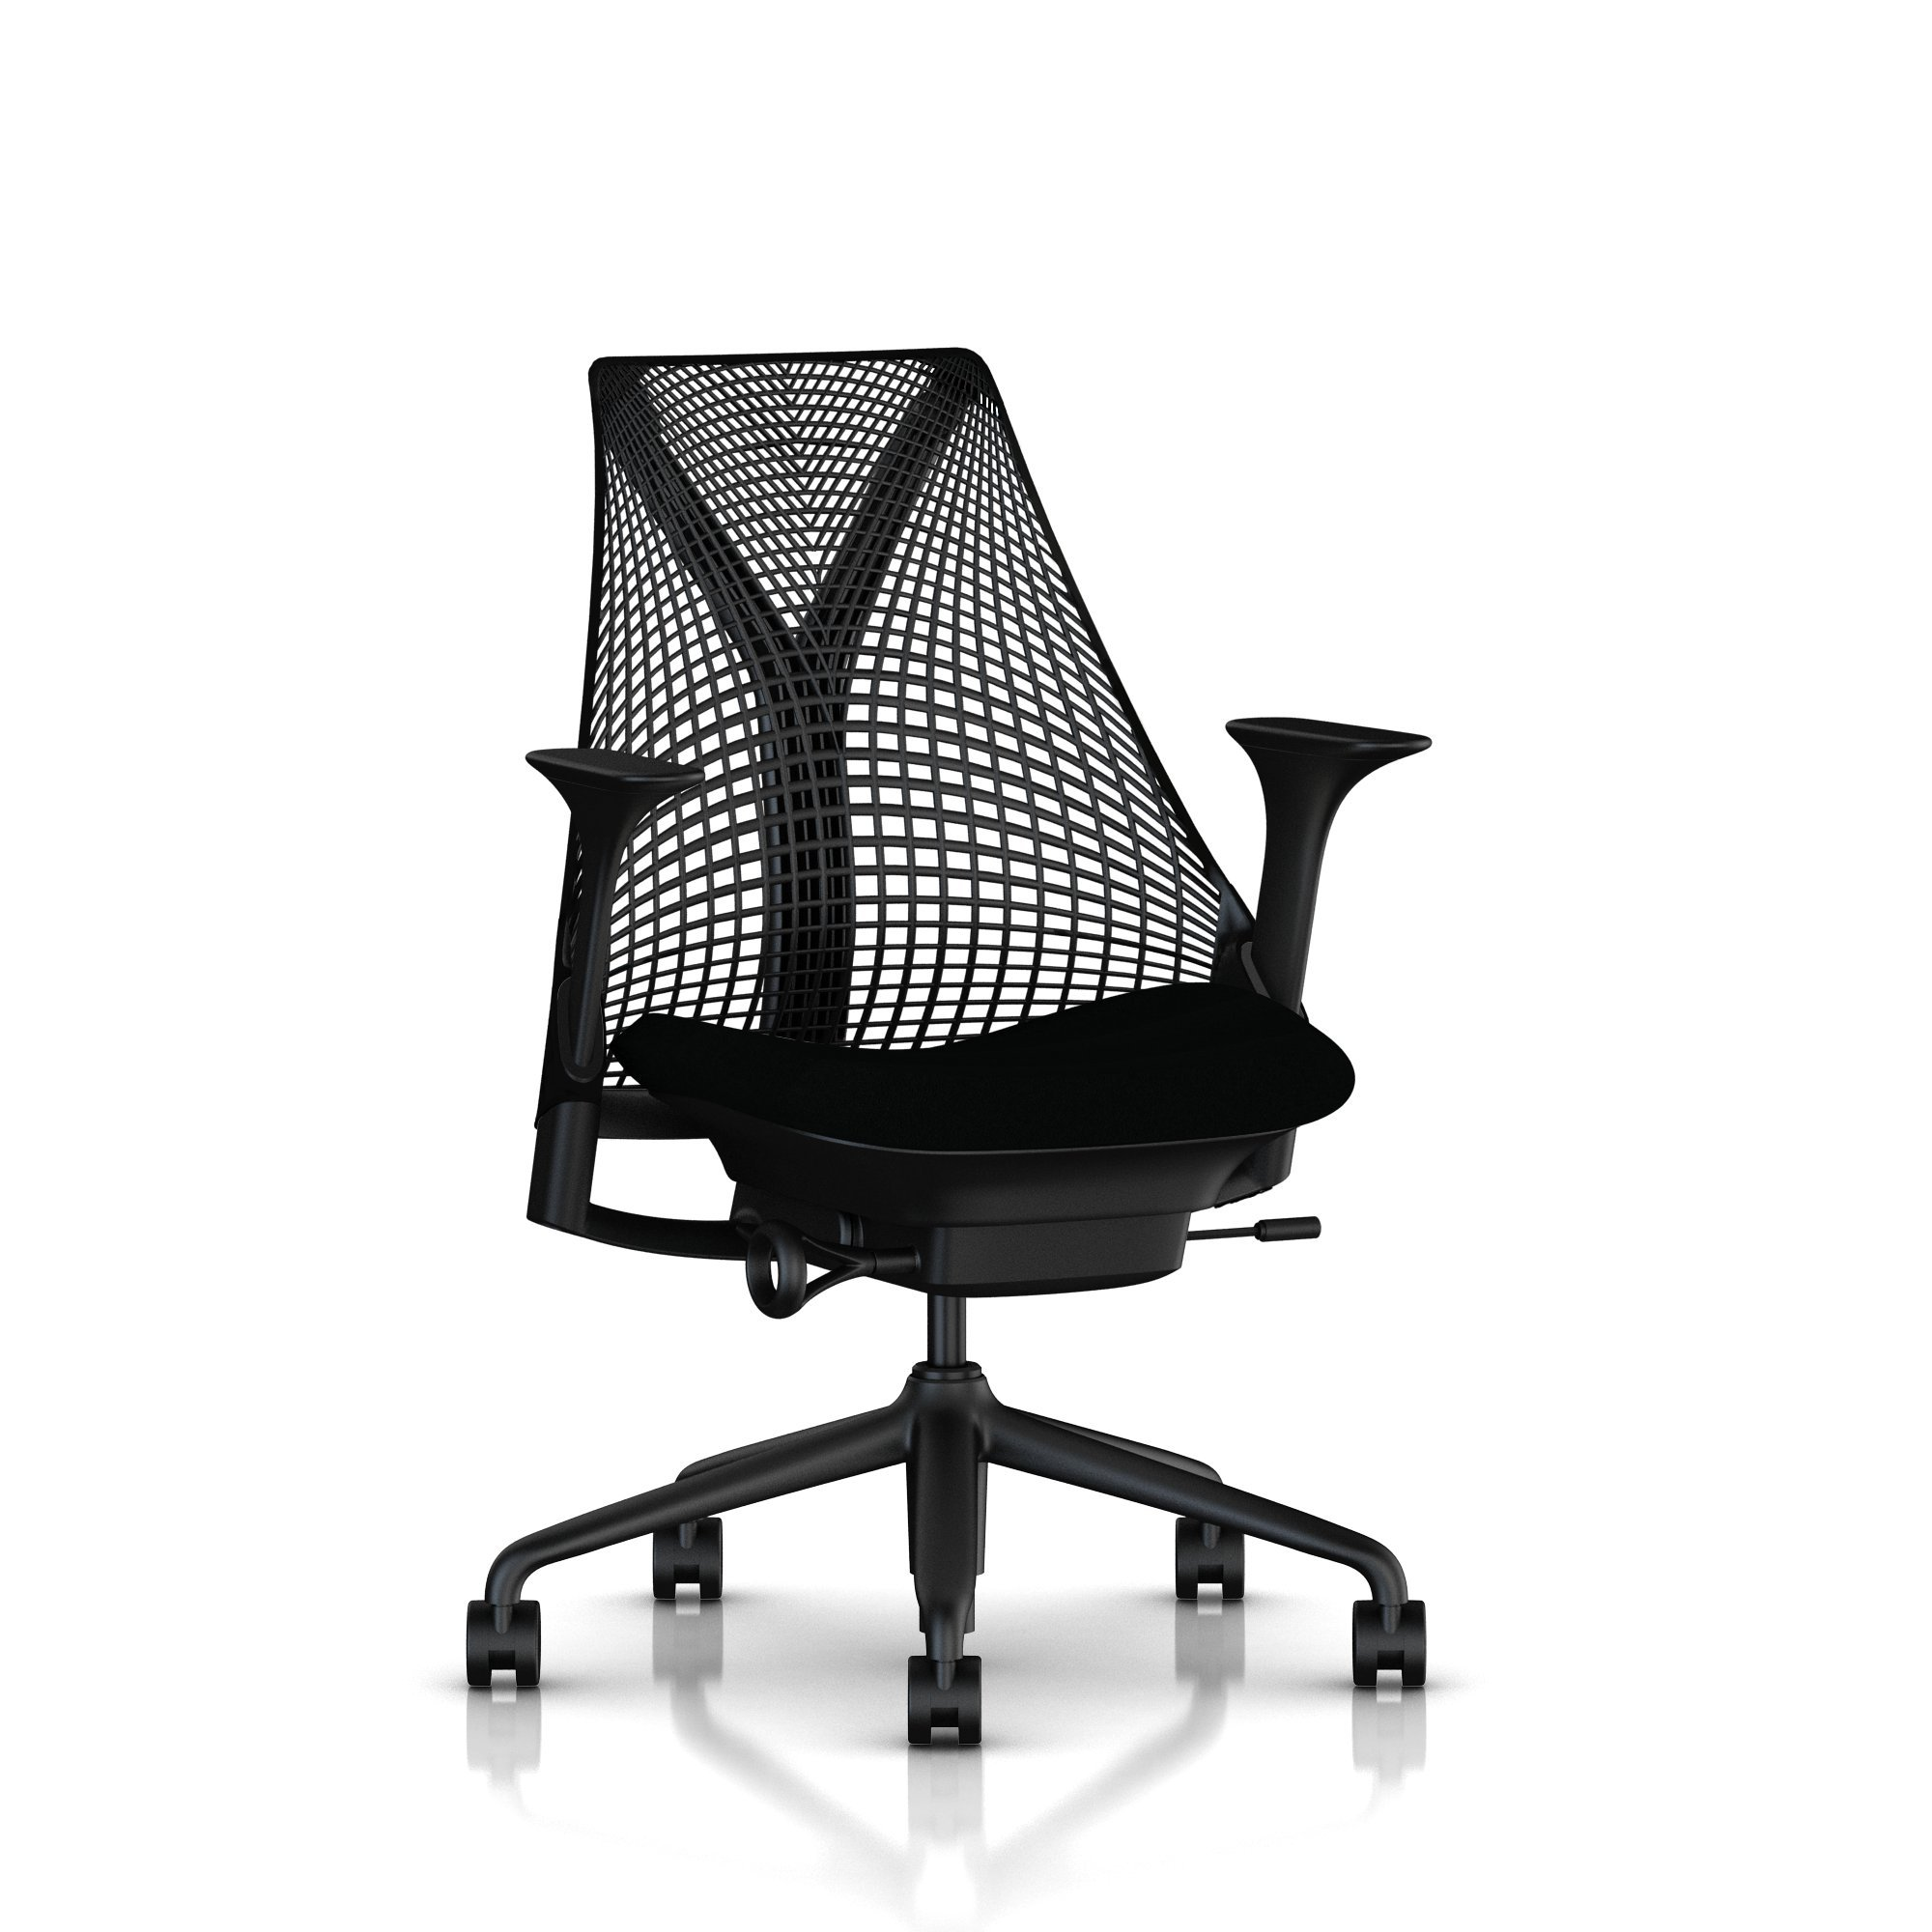 Herman Miller Sayl Ergonomic Office Chair with Tilt Limiter and Carpet Casters | Stationary Seat Depth and Arms | Black Frame with Licorice Crepe Seat by Herman Miller